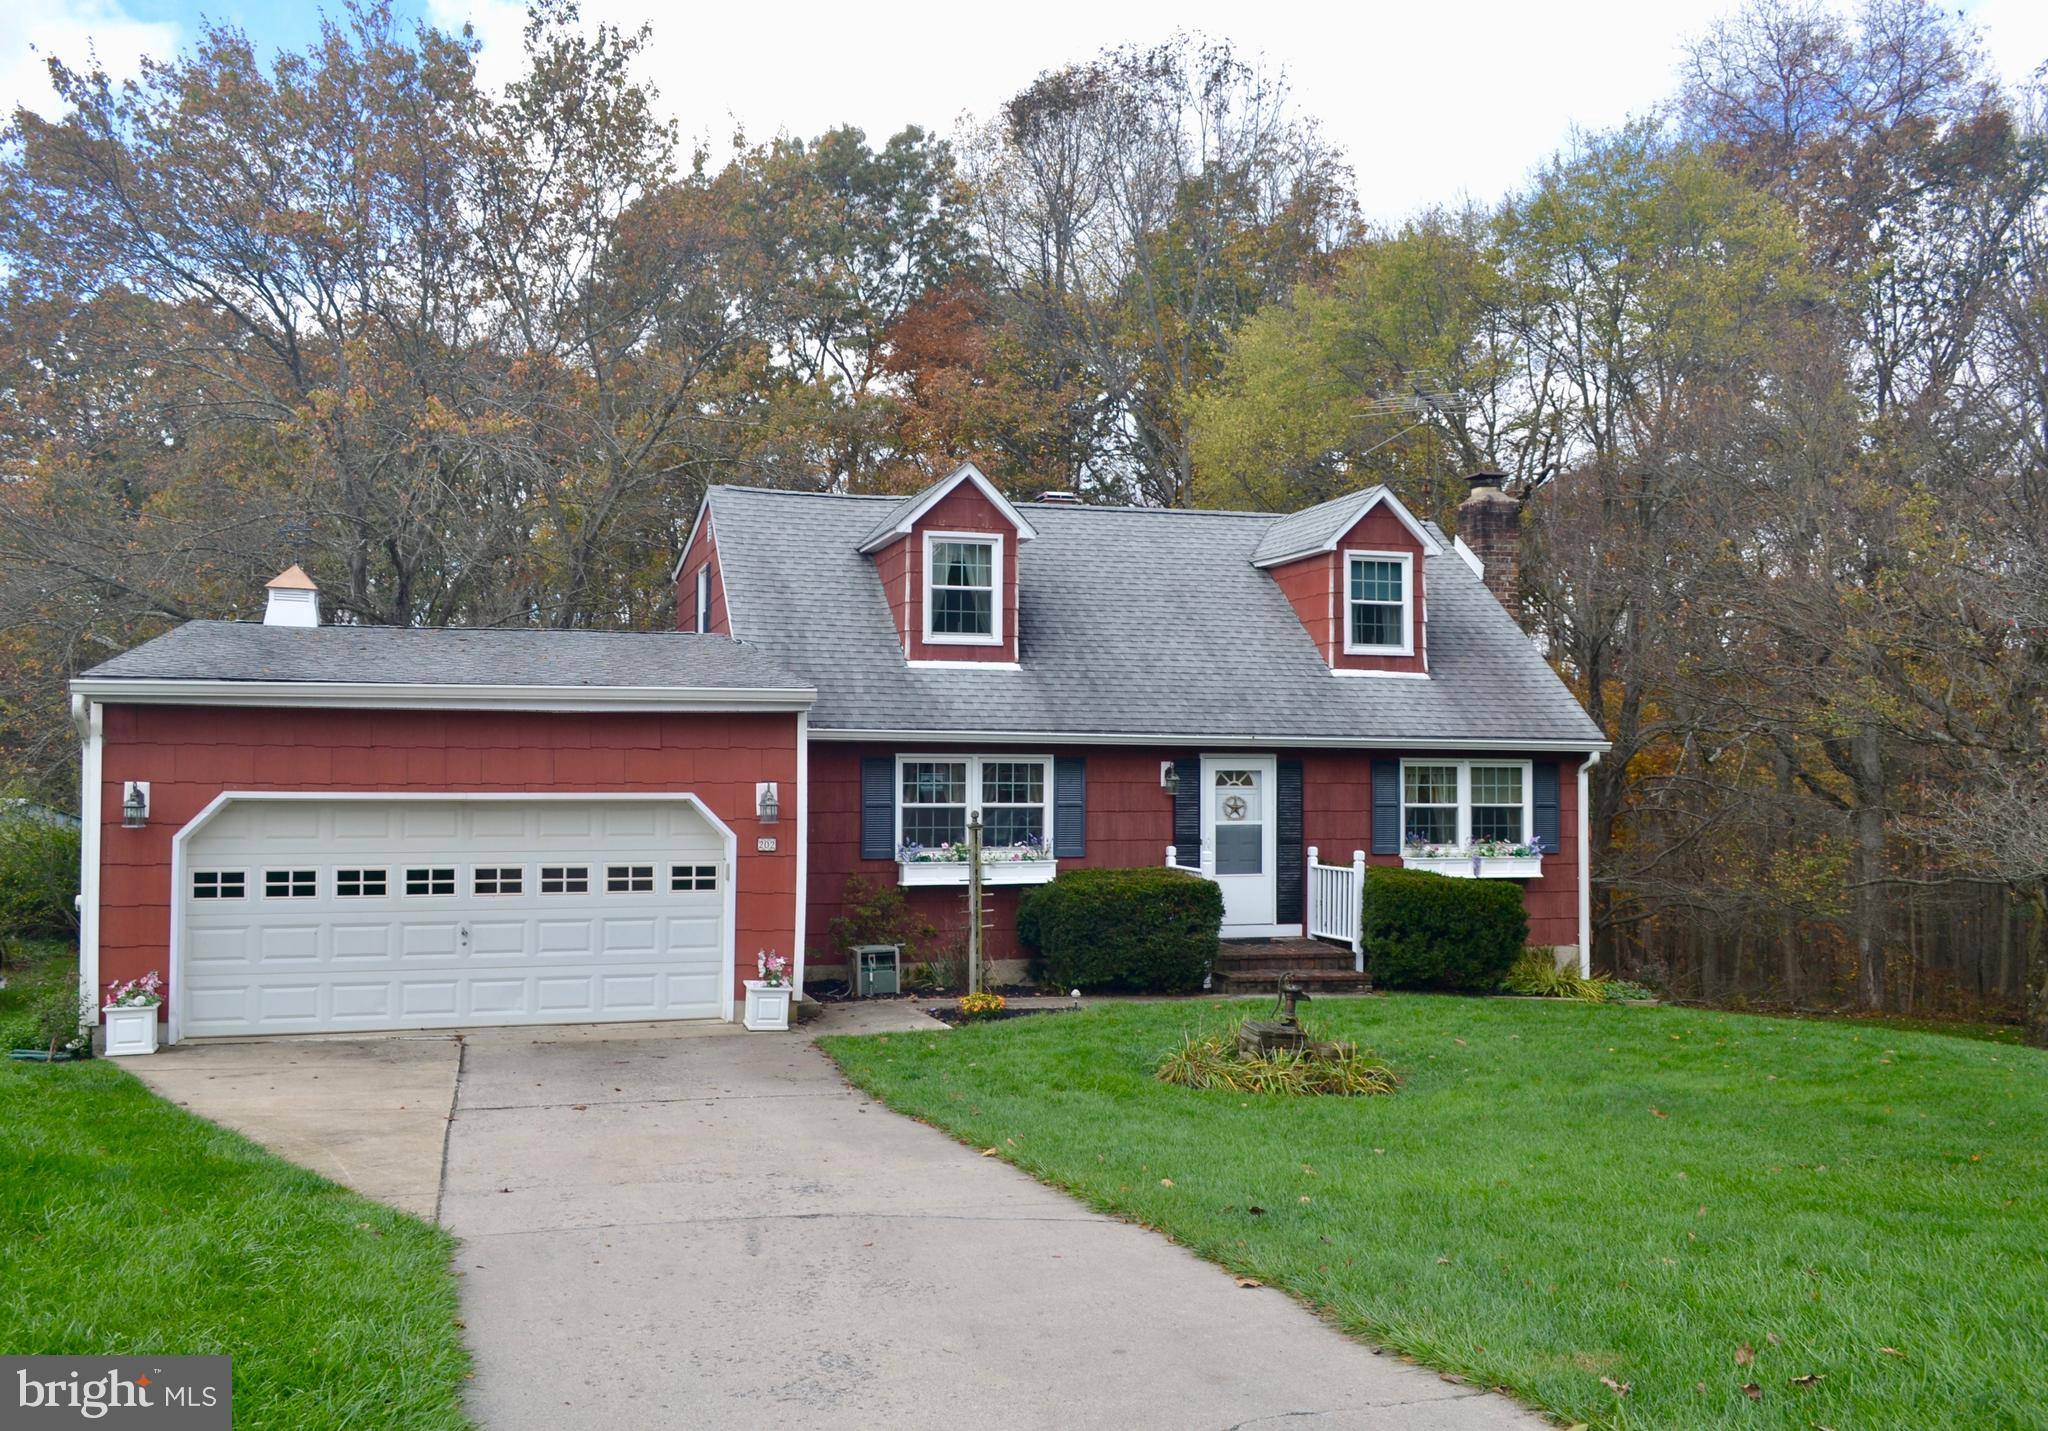 4 BED/2.5 BATH WITH LARGE 2 CAR ATTACHED GARAGE IN WESTMINSTER!  LARGE MASTER BEDROOM ON UPPER LEVEL